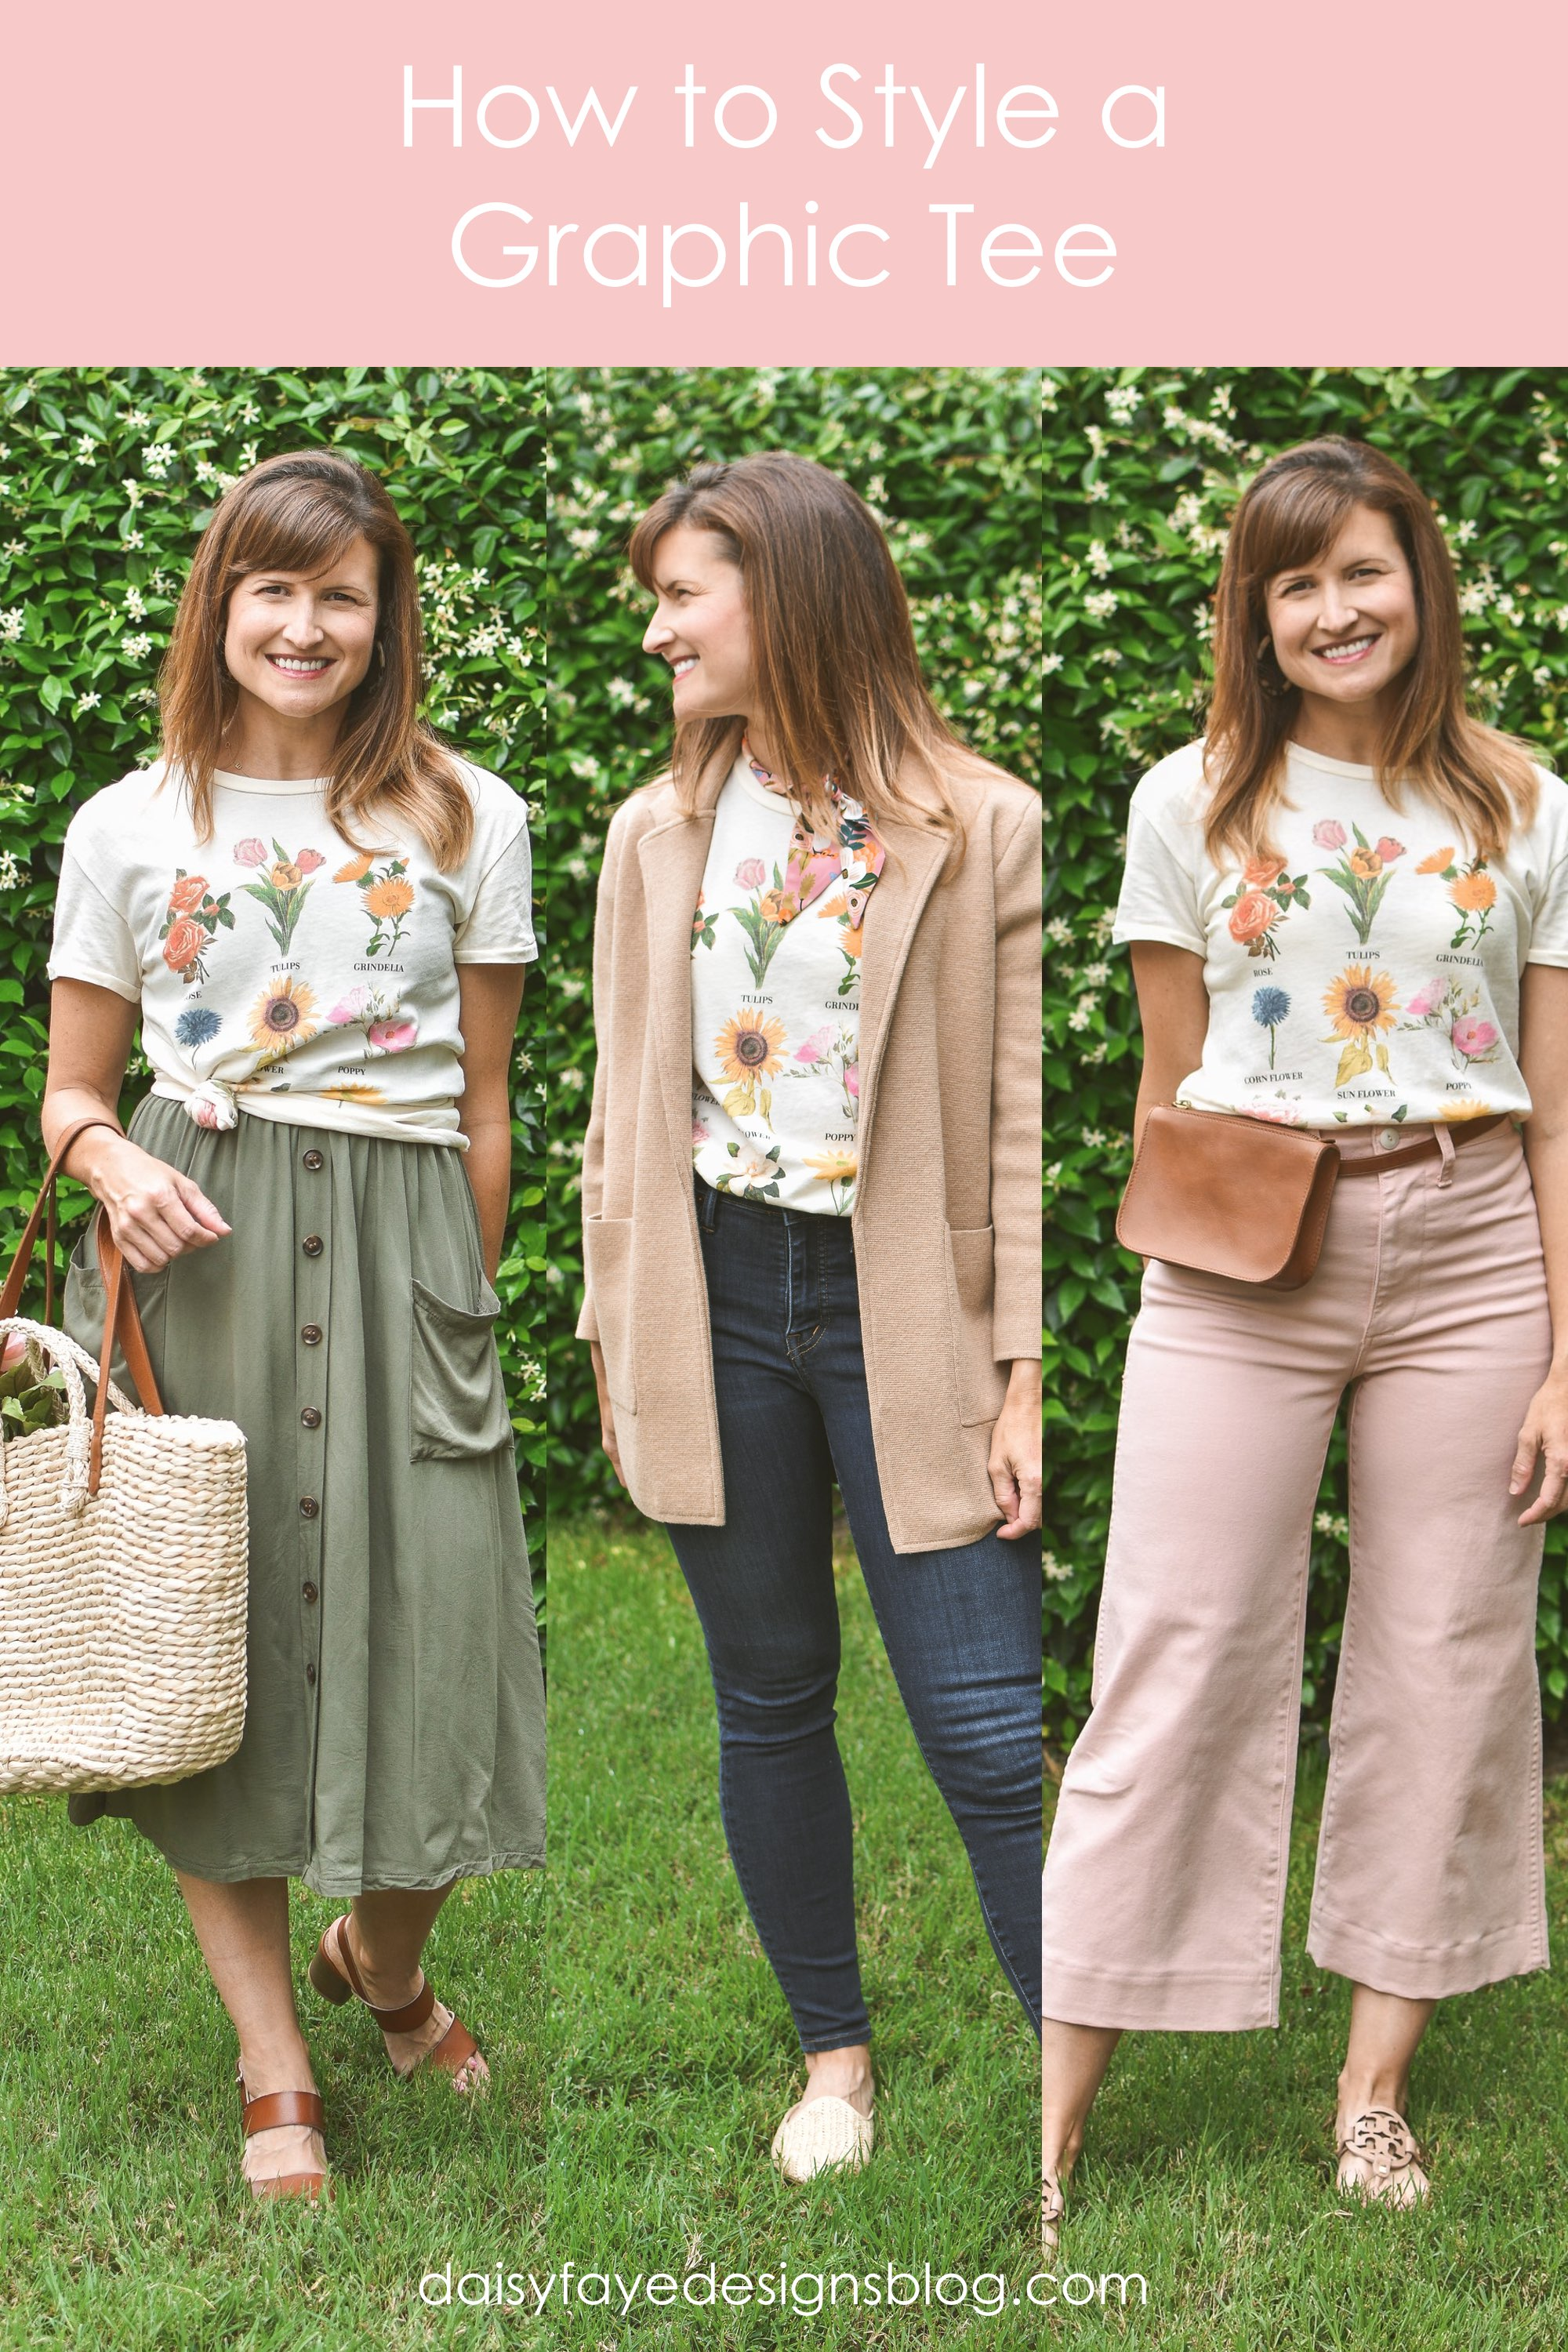 How to style a graphic tee, 3 images of kim wearing a floral graphic tee with pink Madewell wide leg pants, with J Crew camel sweater blazer and jeans, and with an olive skirt.